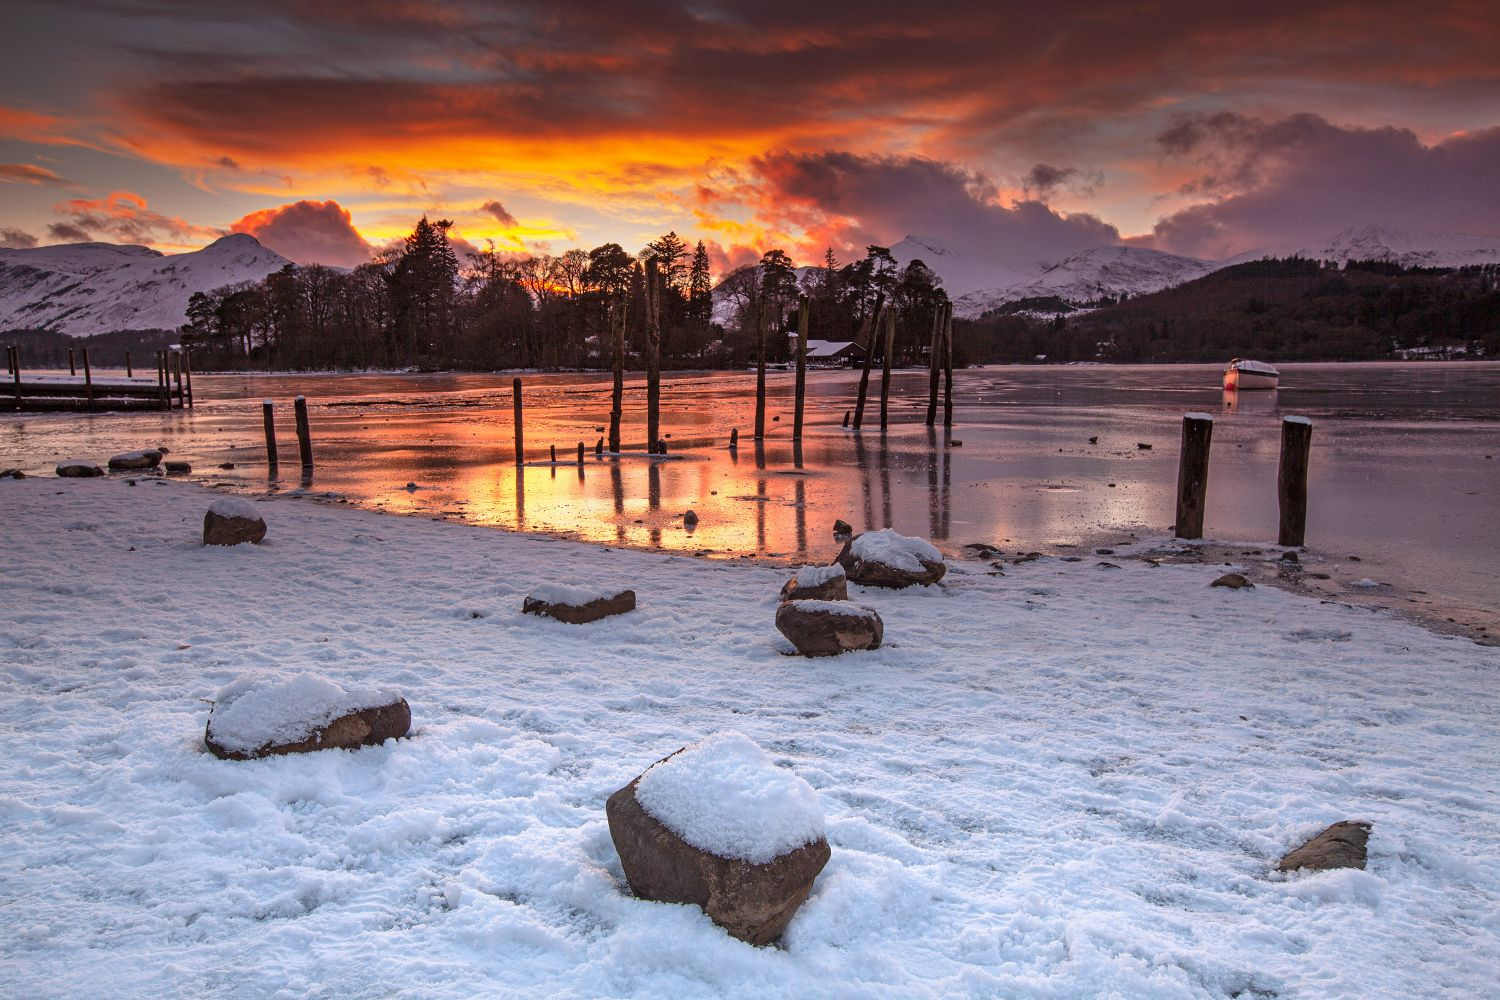 Sunset over Catbells and a frozen Derwentwater